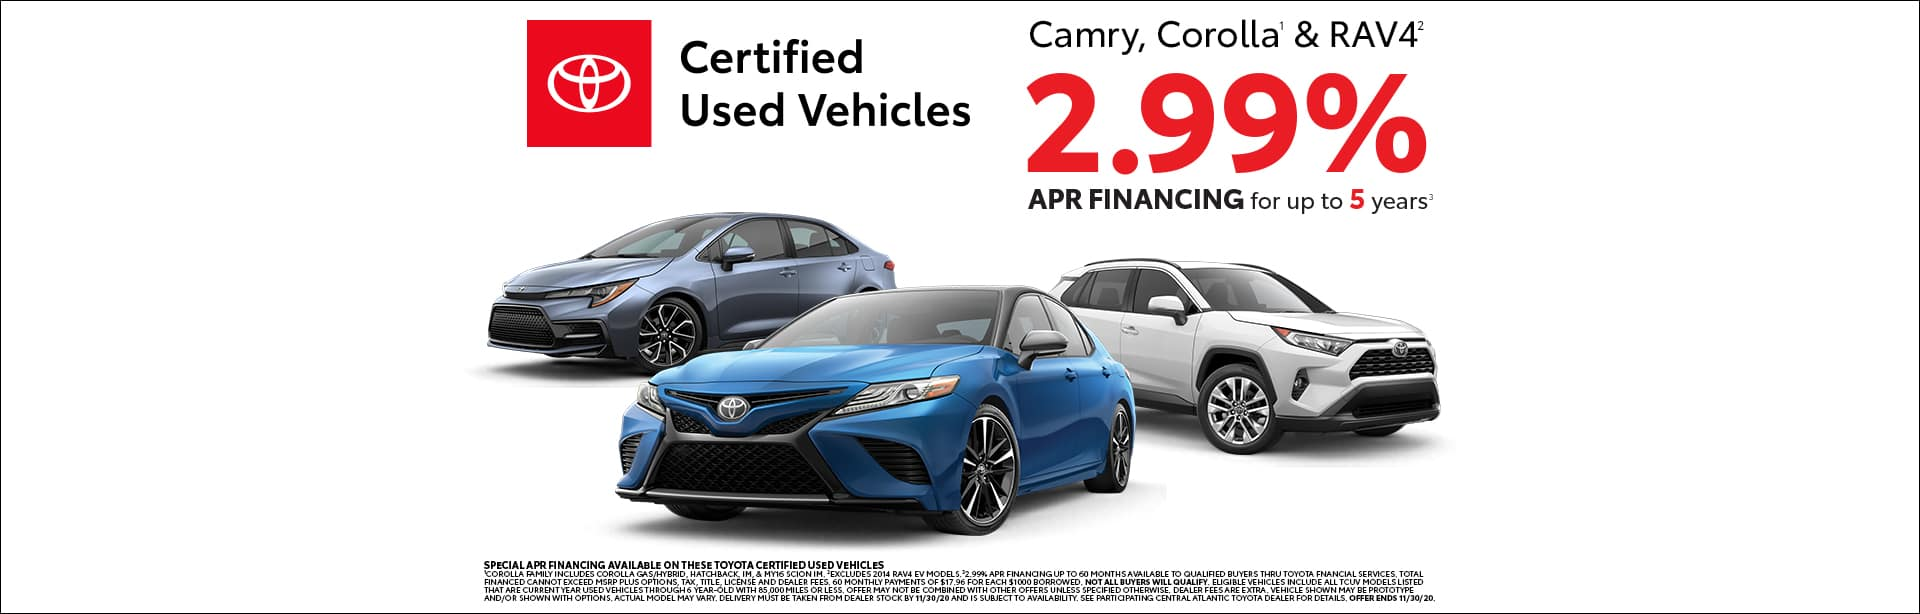 Certified Used Vehicles Carmry, Corolla & Rav 4 2.99% APR Financing up to 5 years